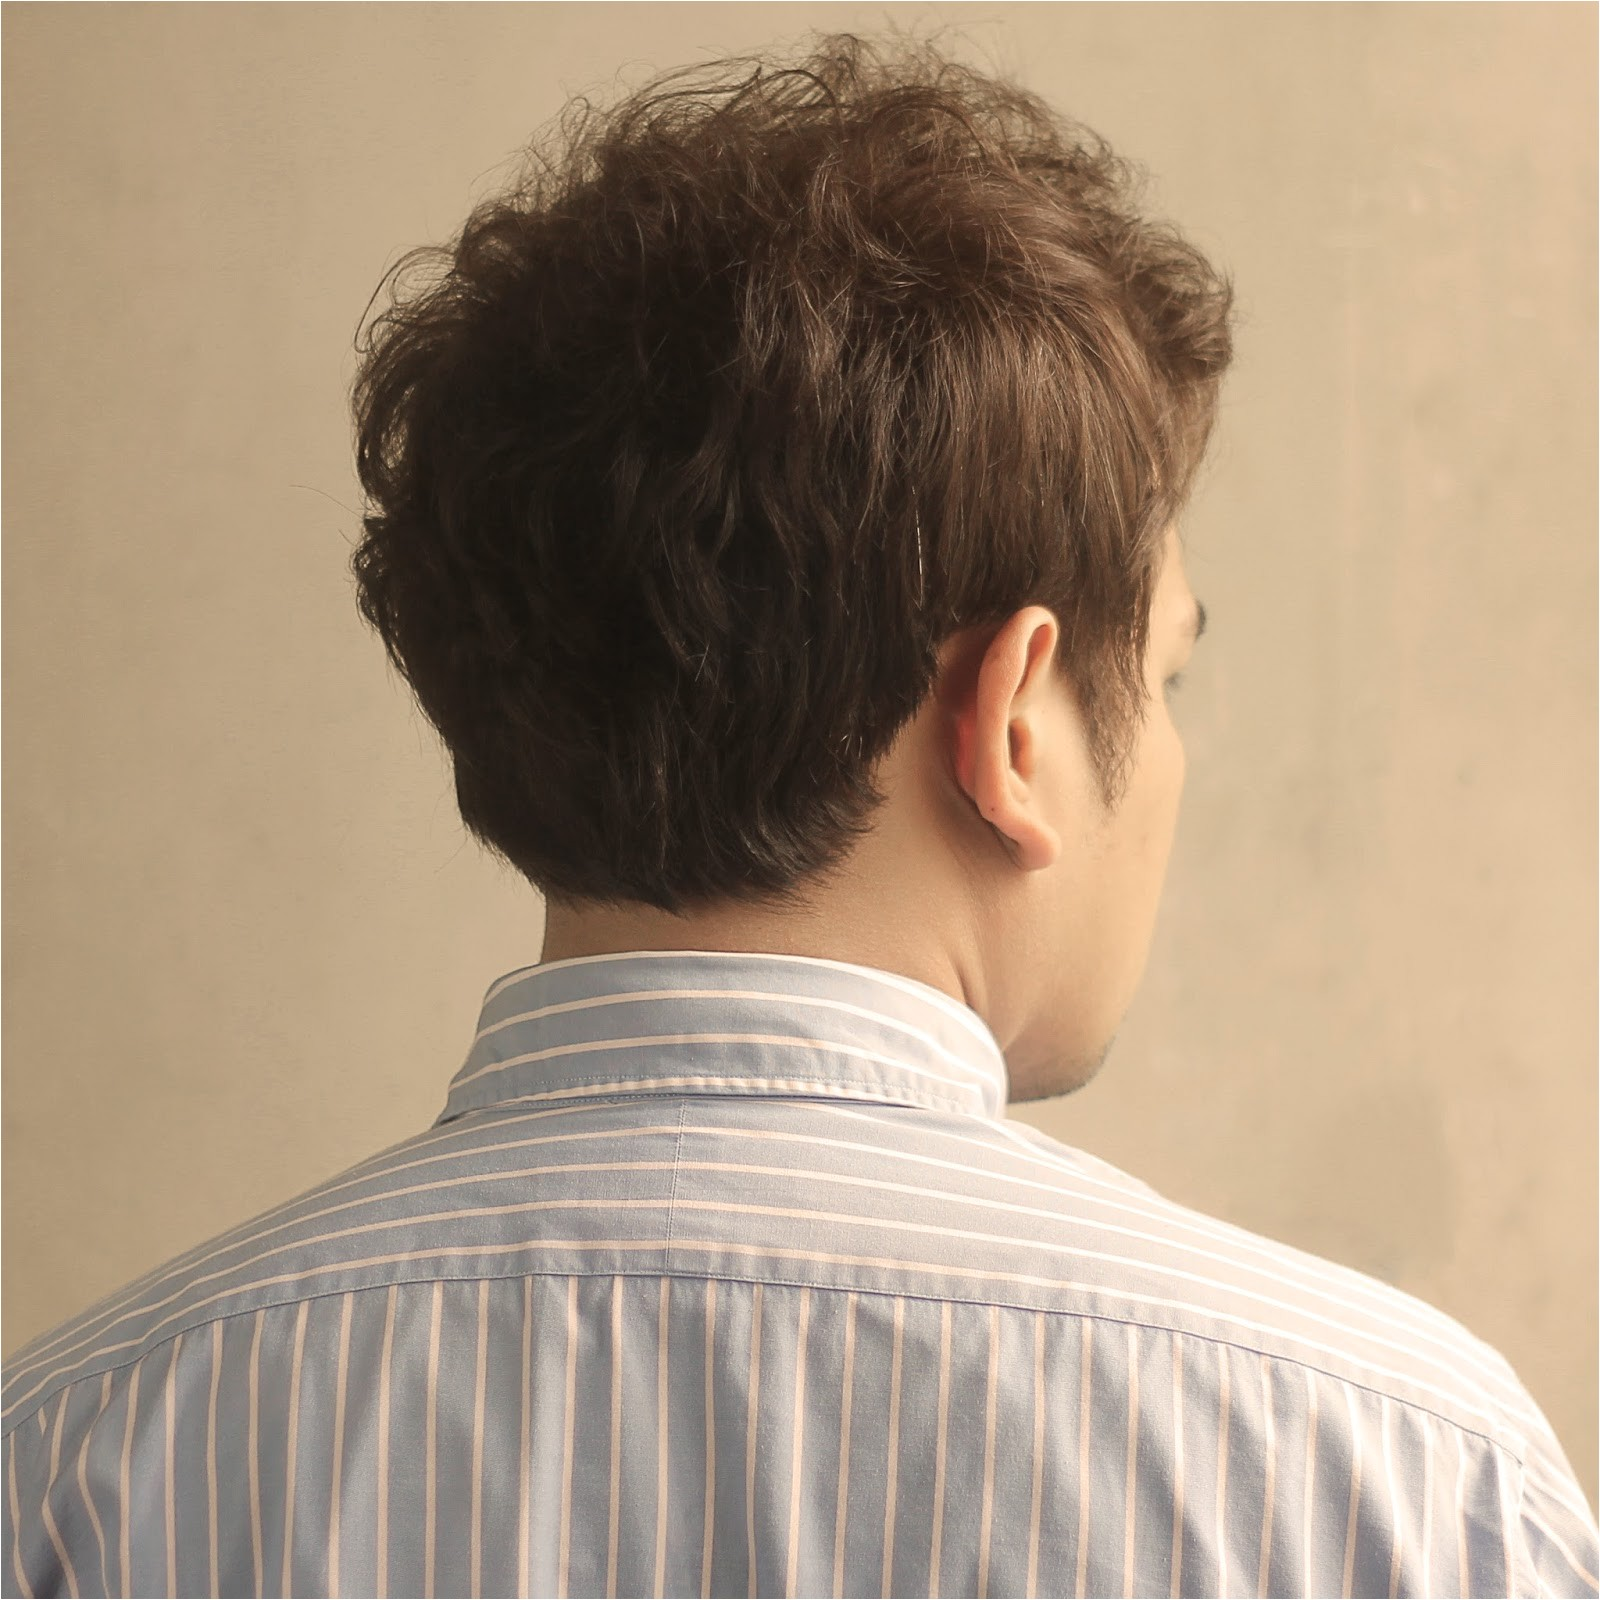 mens hairstyle for back of head